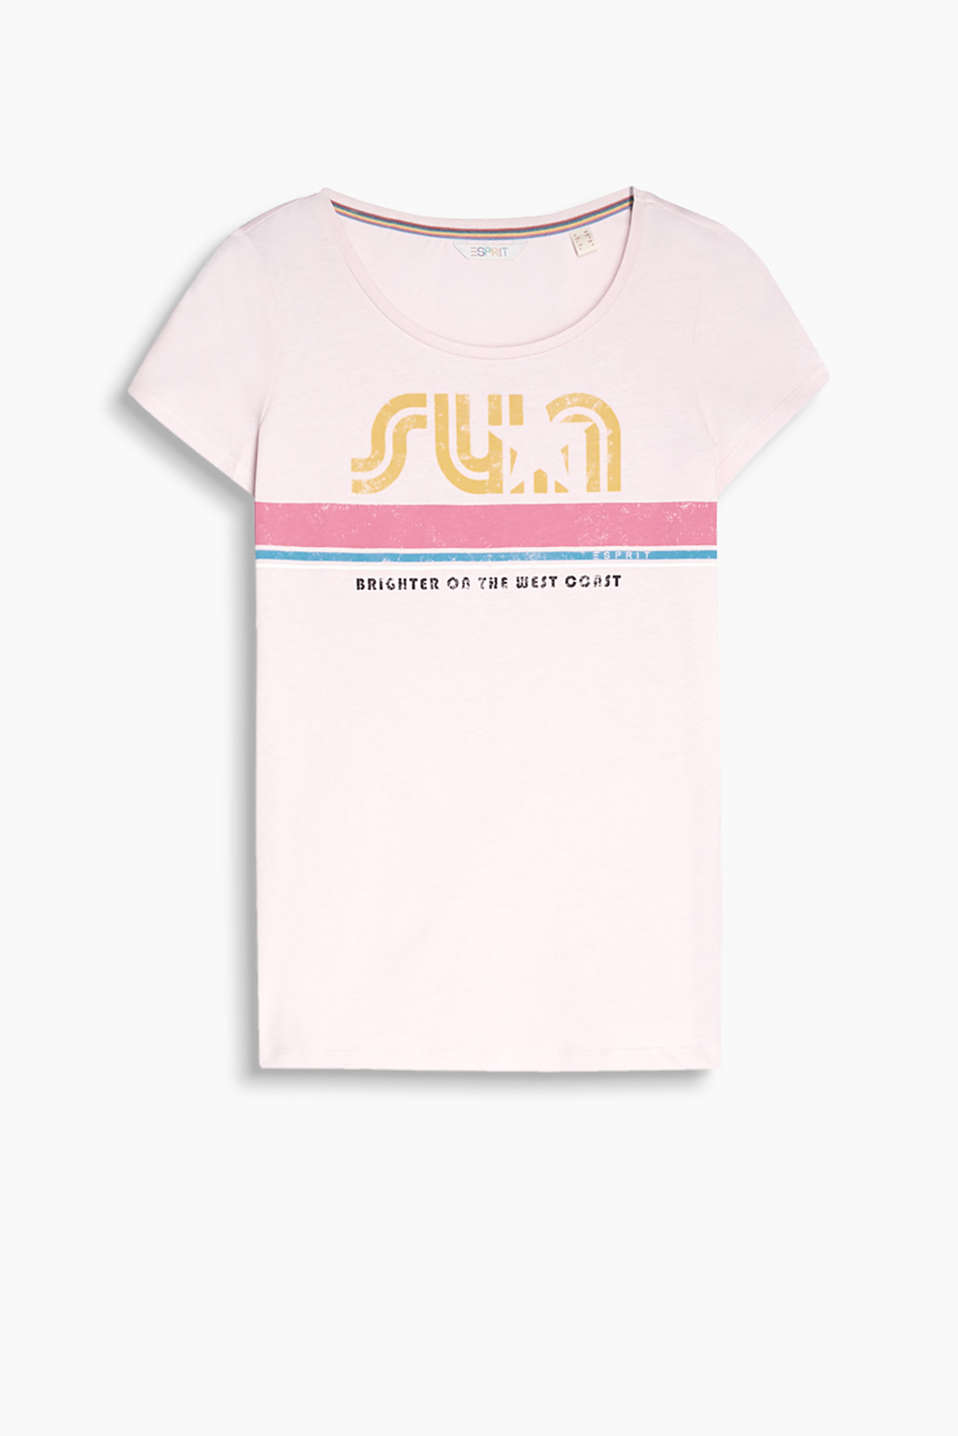 Retro Collection: T-shirt with a sun statement, block stripes and logo print on the back, organic cotton